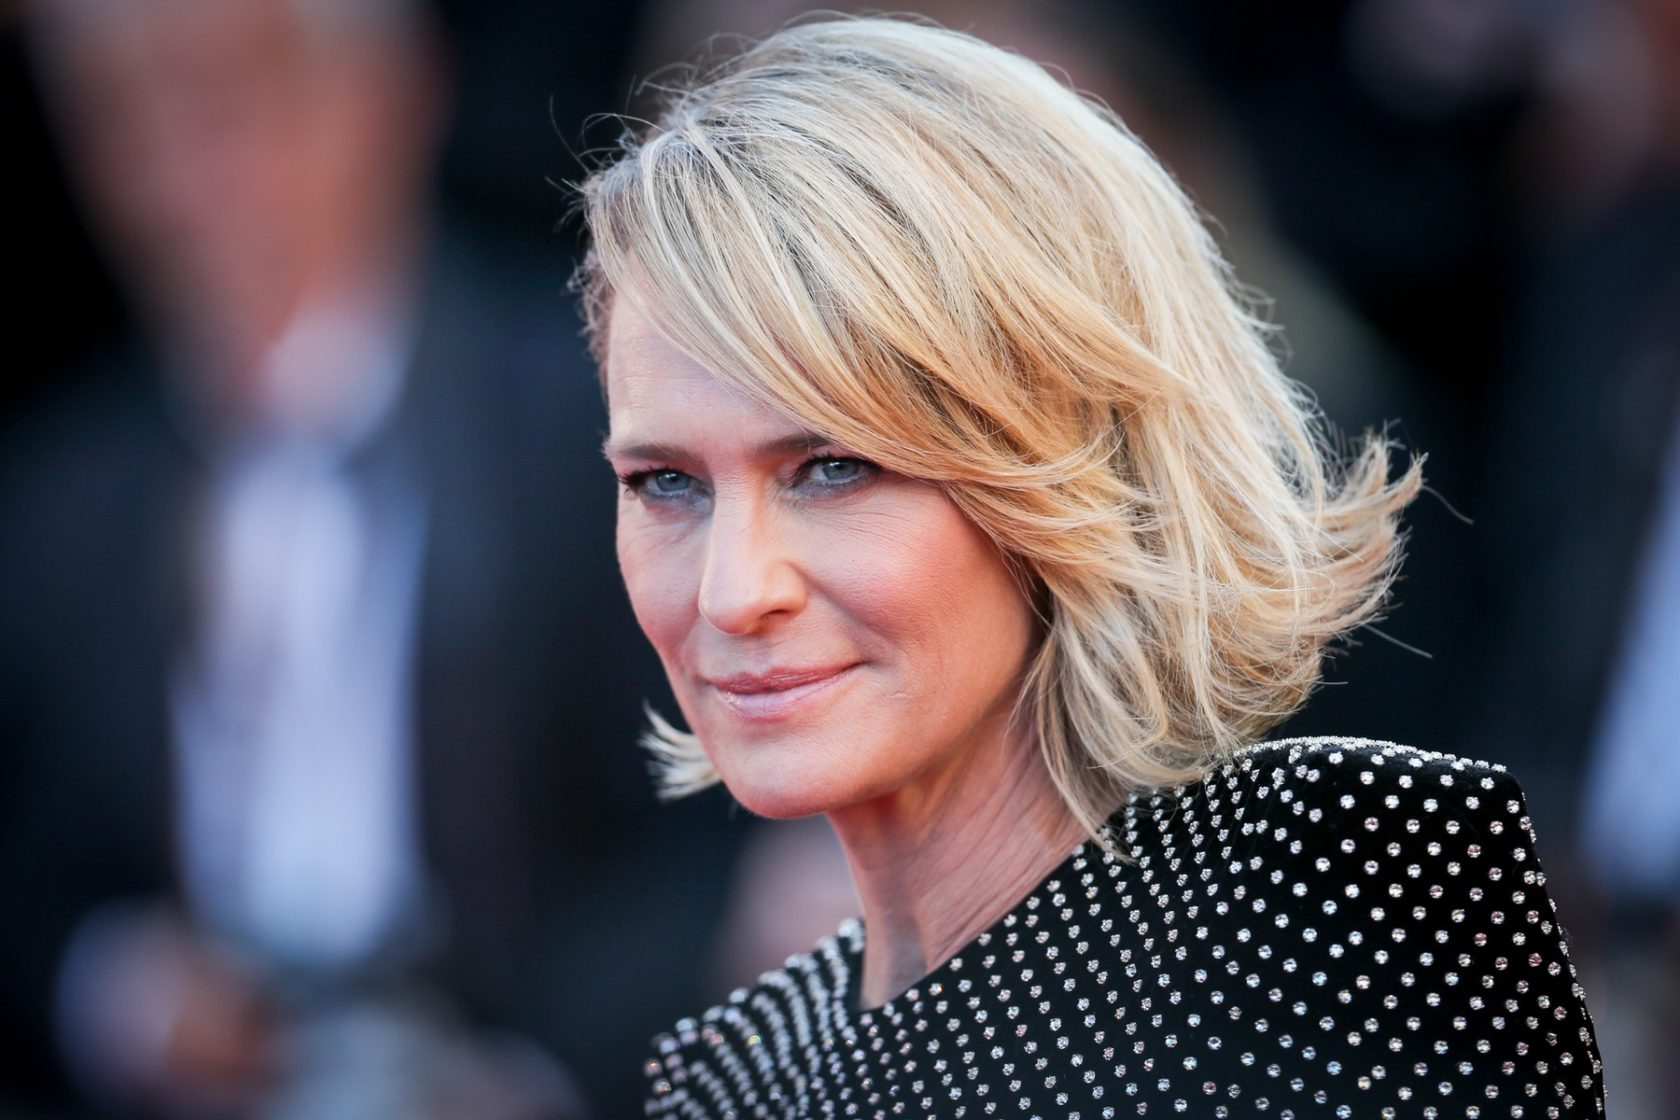 Robin Wright attends the 'Ismael's Ghosts (Les Fantomes d'Ismael)' screening and Opening Gala during the 70th annual Cannes Film Festival at Palais des Festivals on May 17, 2017 in Cannes, France., Image: 332673007, License: Rights-managed, Restrictions: , Model Release: no, Credit line: Profimedia, Abaca